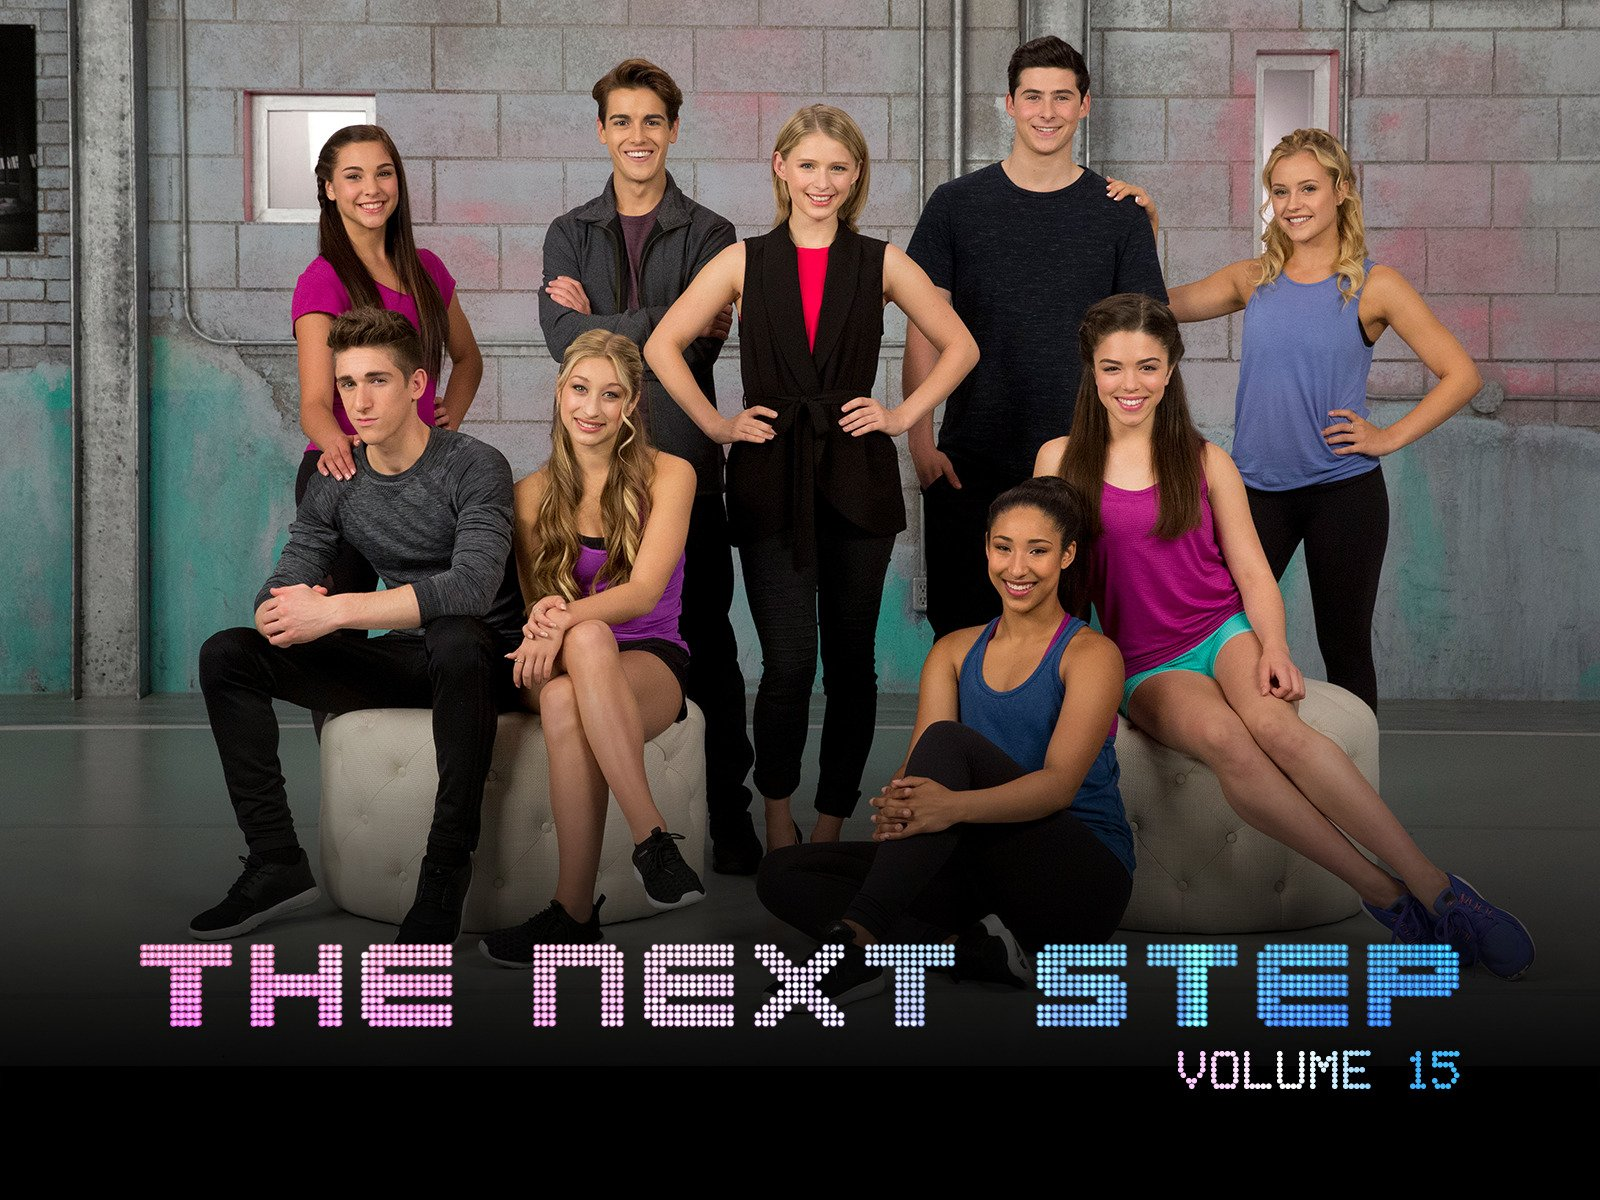 Watch The Next Step Vol 15 Prime Video